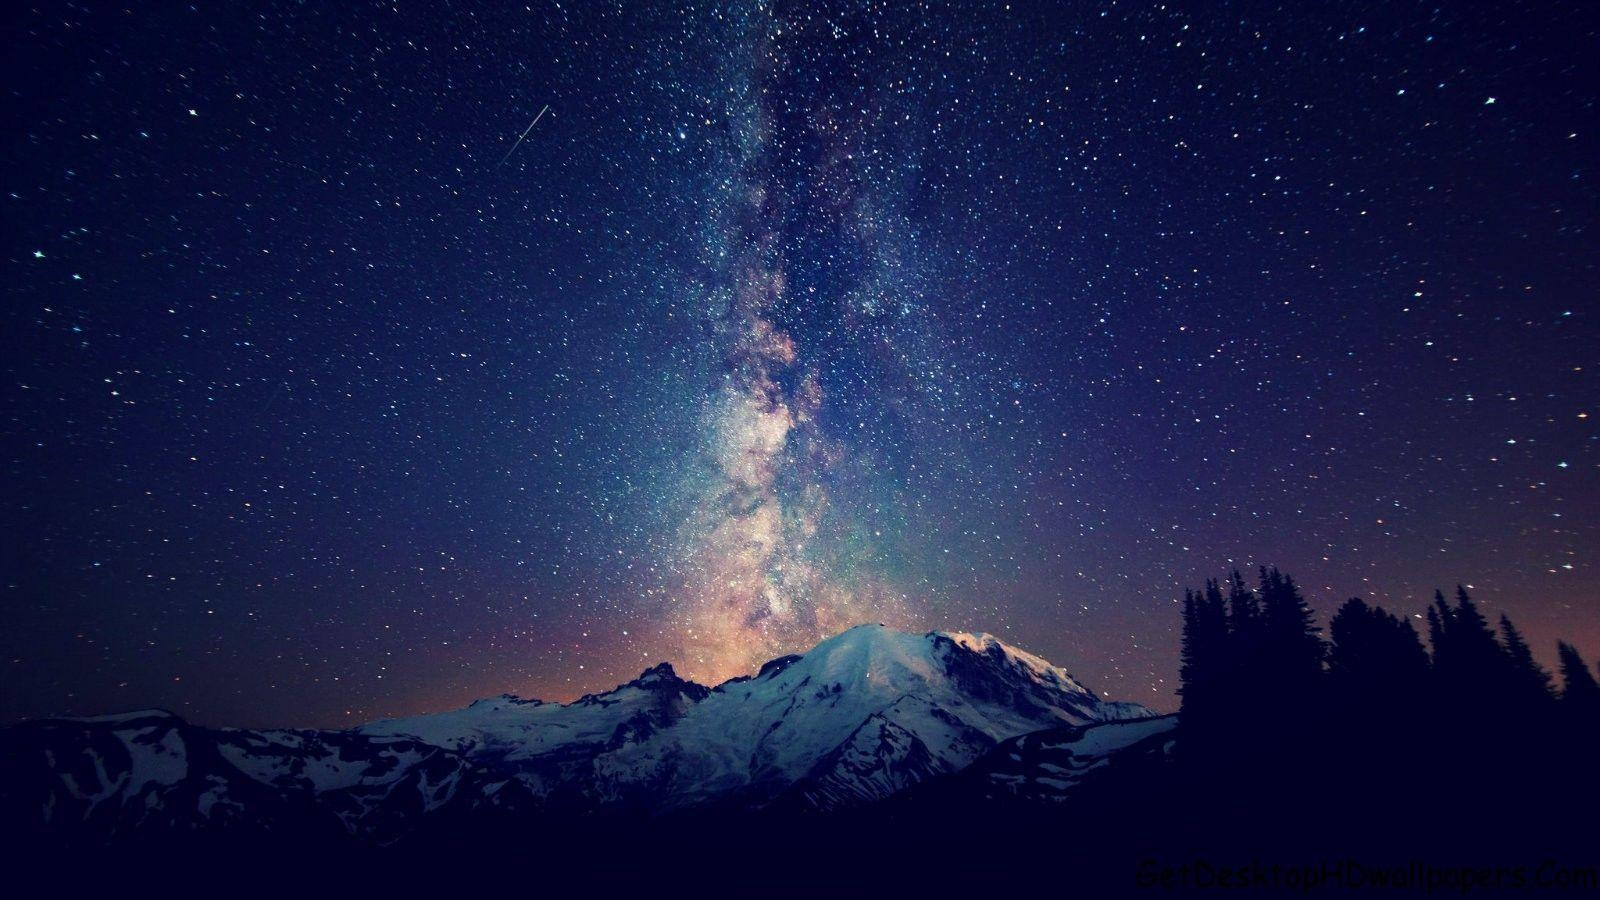 Milky Way Hd 2 Wallpapers and Backgrounds